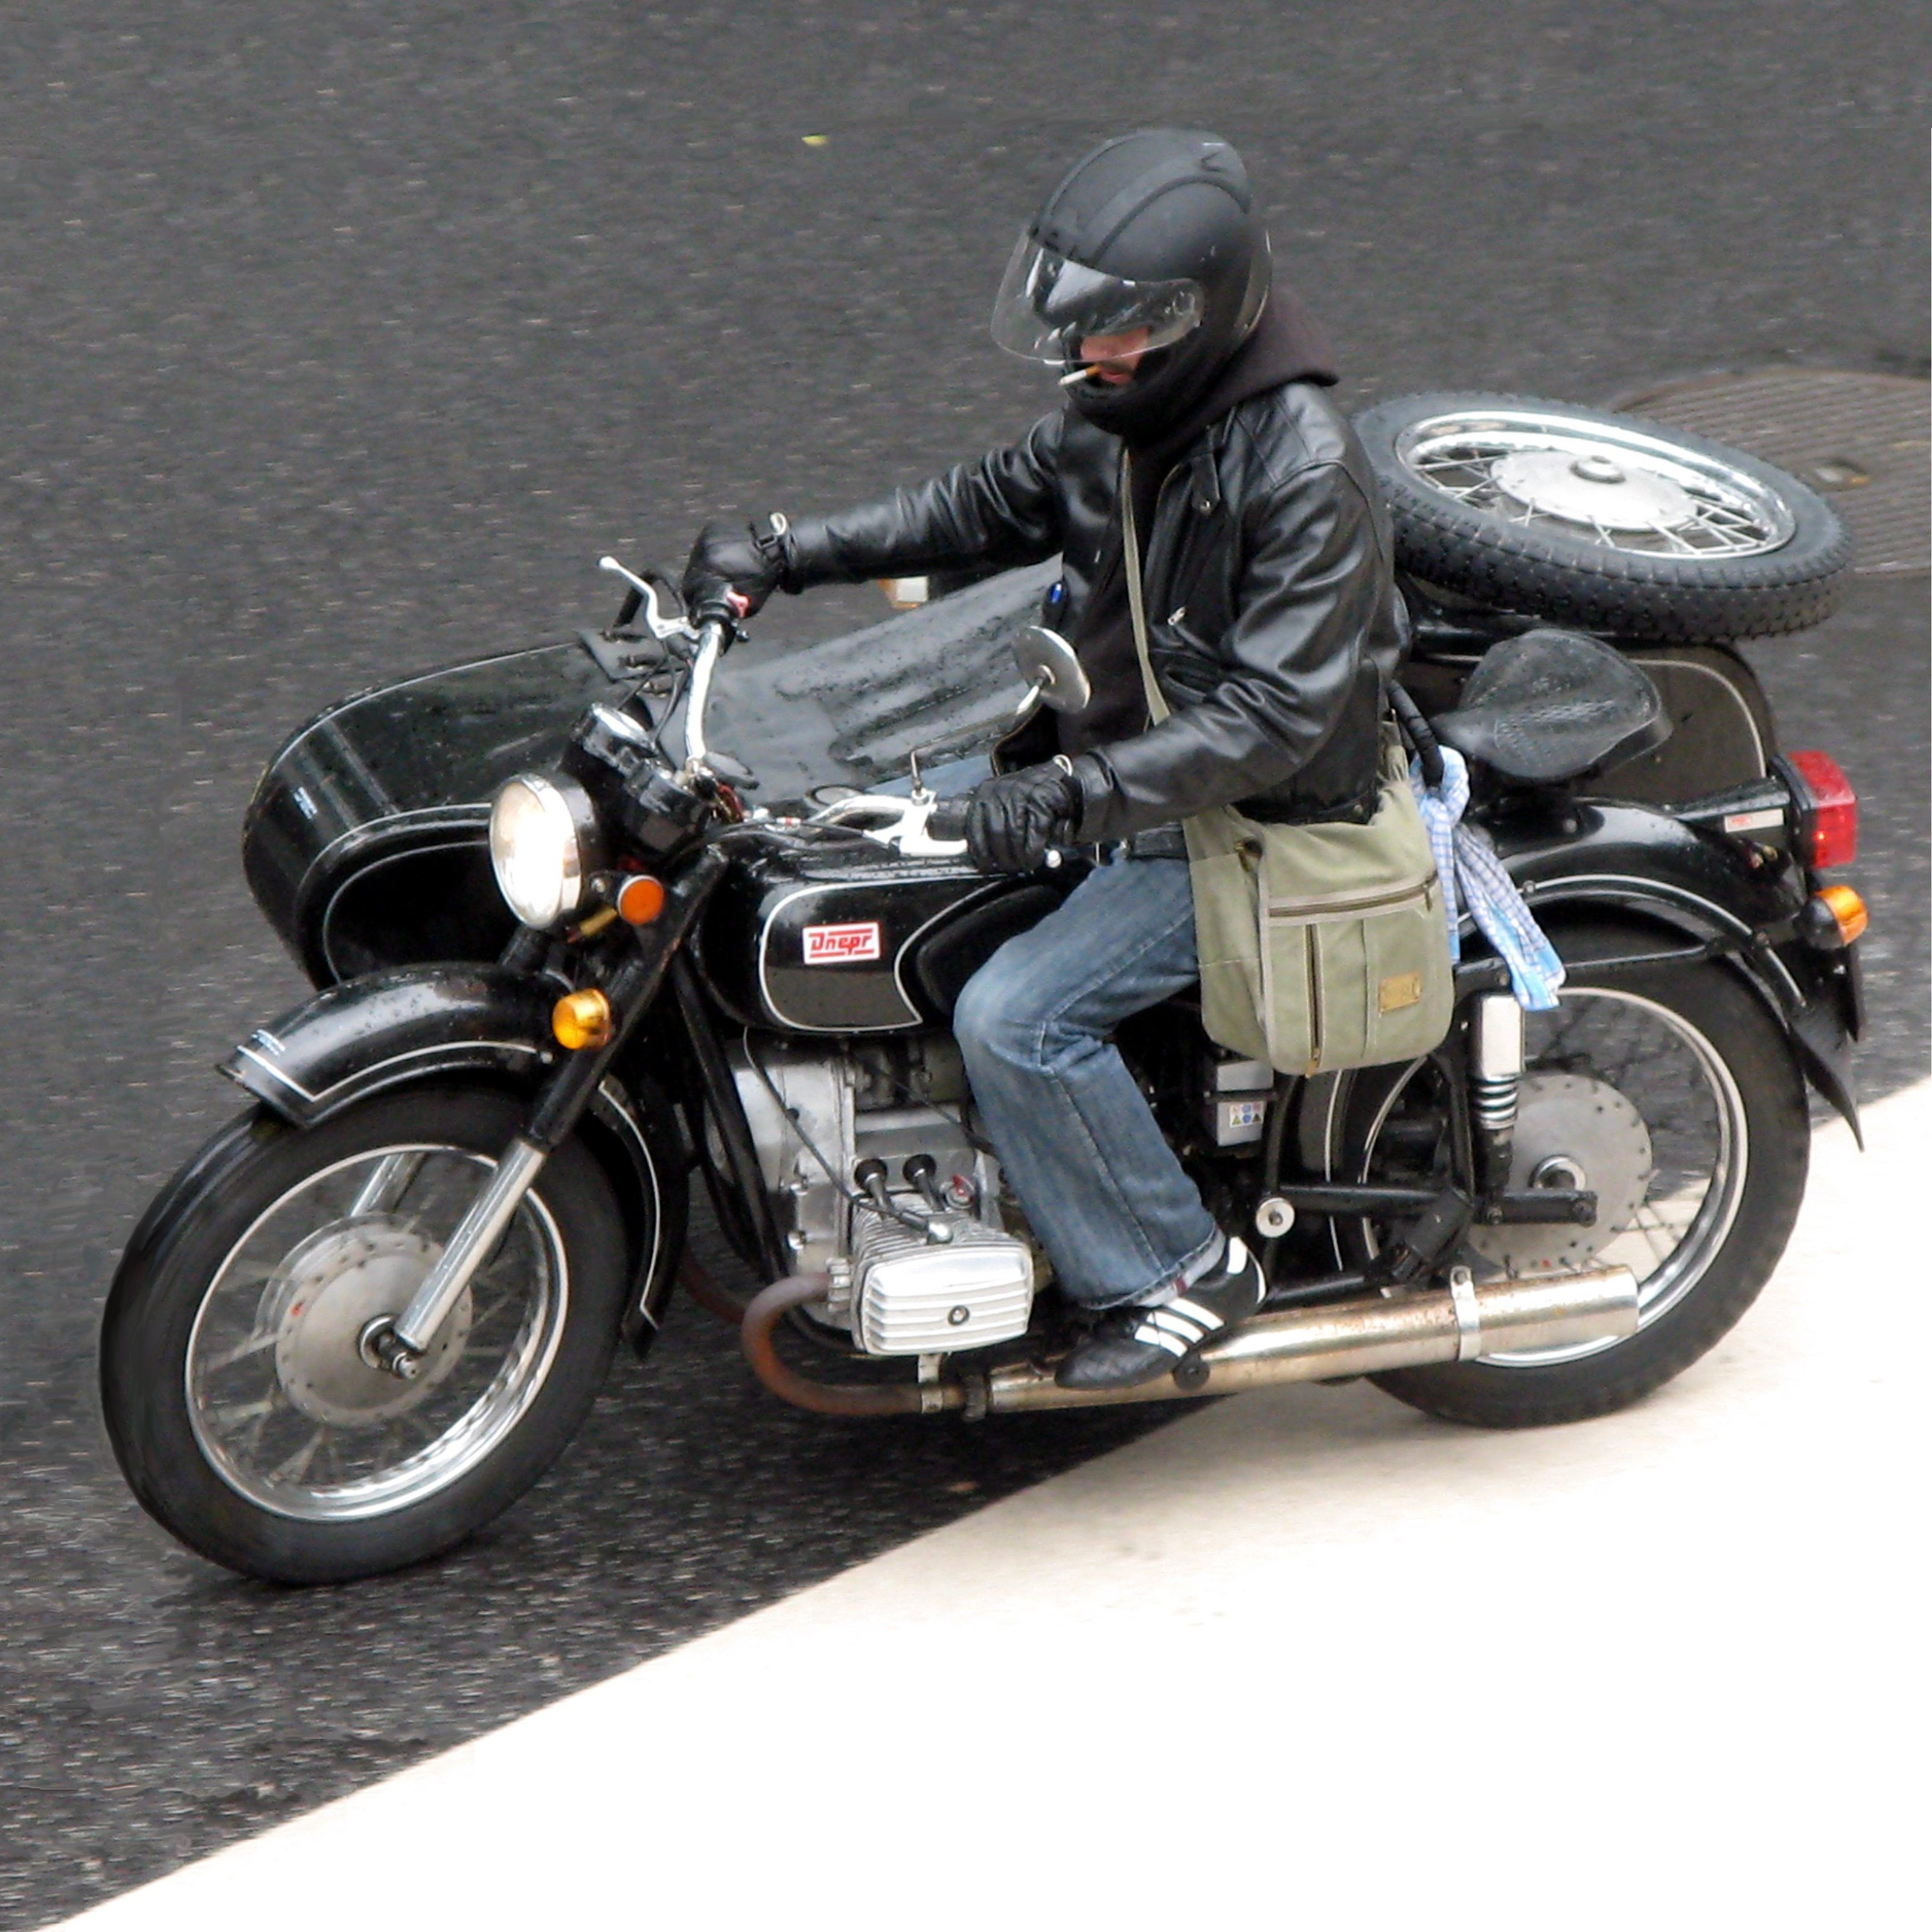 Ural Gear Up Outfit 2003 images #127656